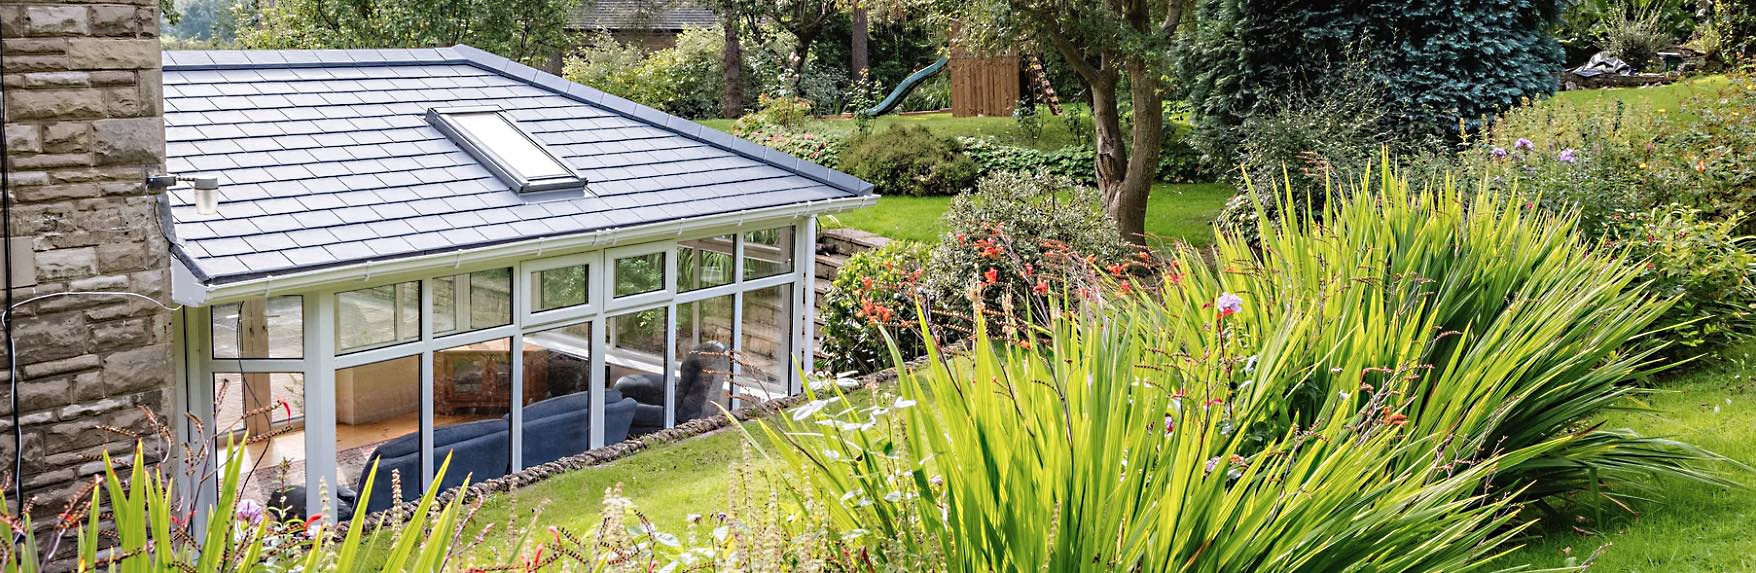 Equinox tiled conservatory roof replacement